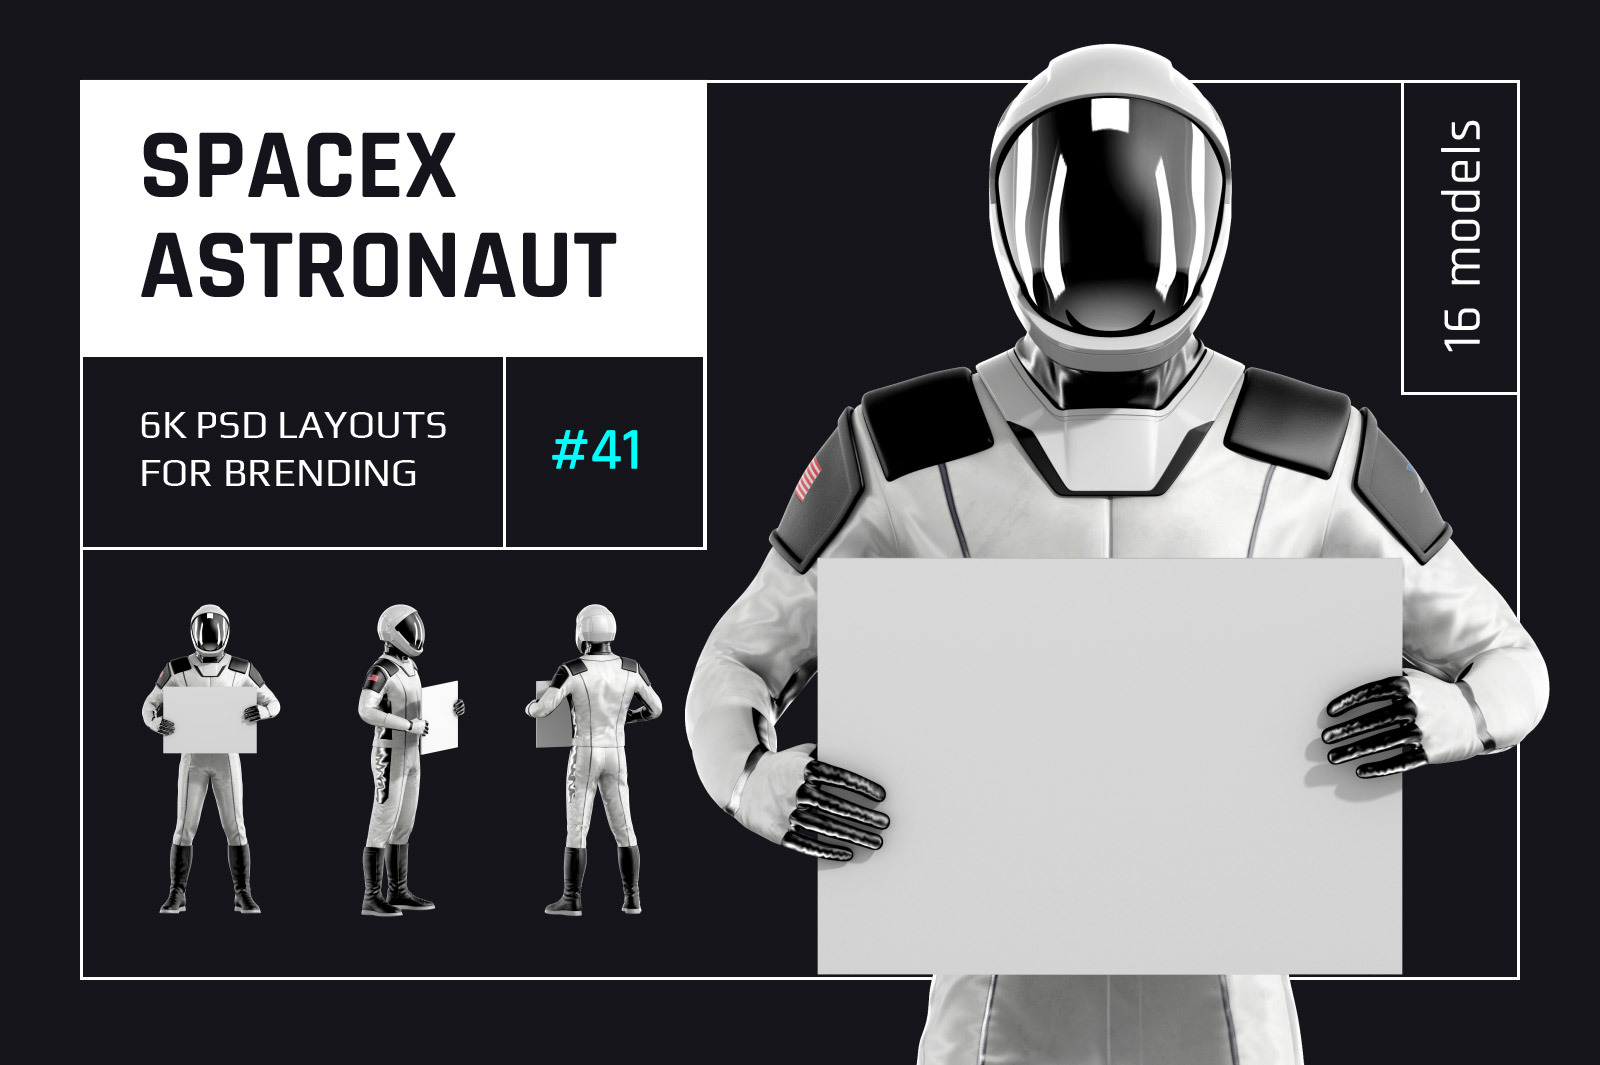 PSD Mockup 3D model SpaceX Astronaut #41